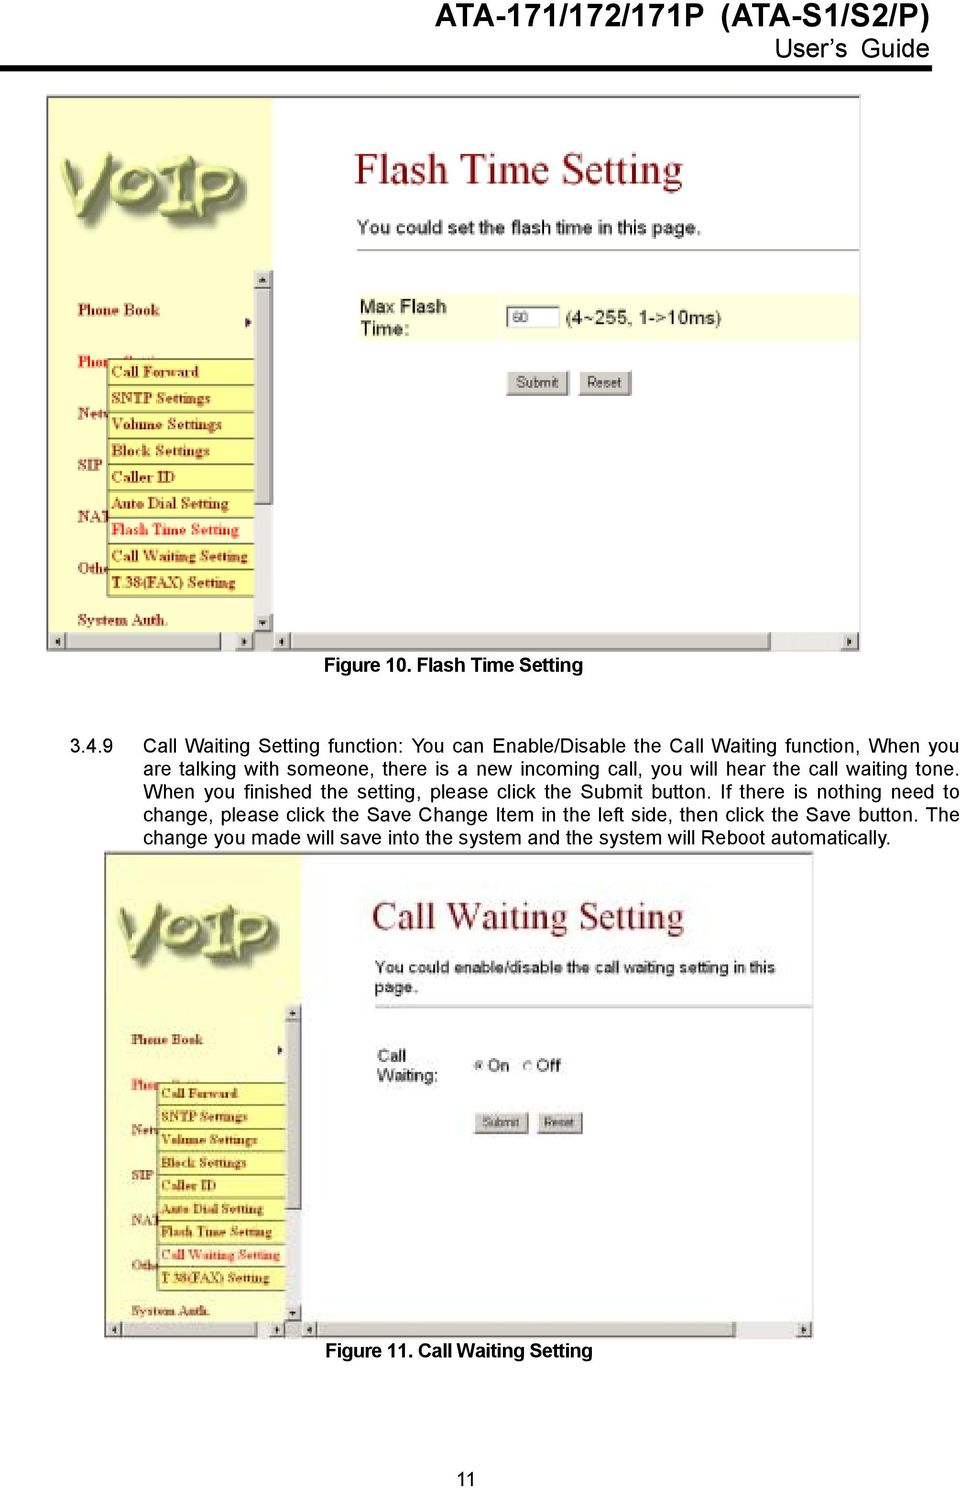 new incoming call, you will hear the call waiting tone. When you finished the setting, please click the Submit button.